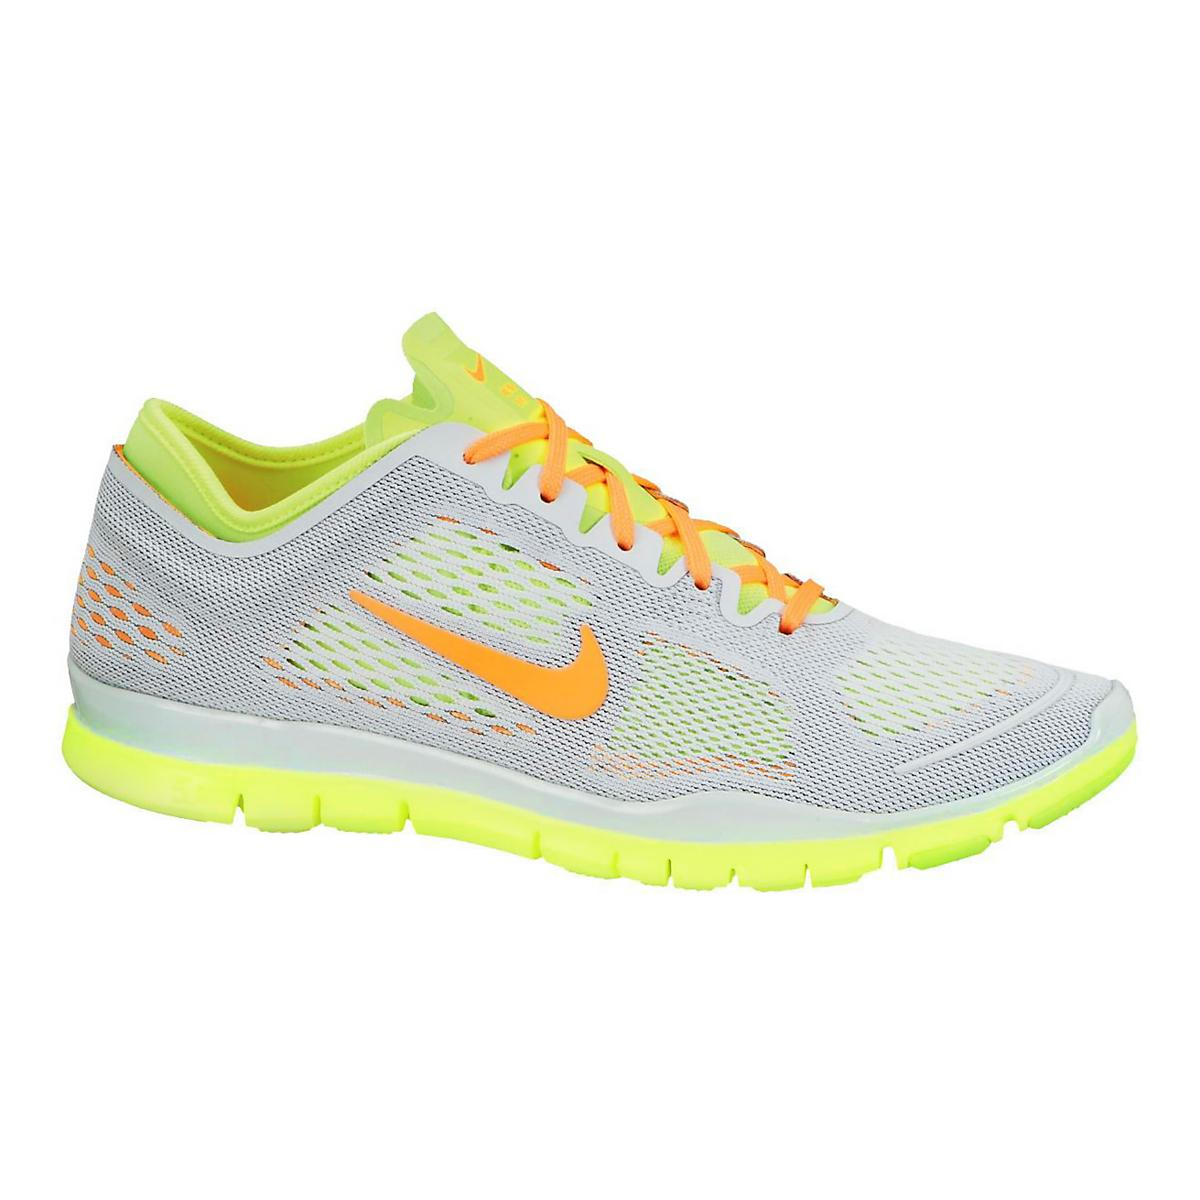 281a53016fe Womens Nike Free 5.0 TR Fit 4 Cross Training Shoe at Road Runner Sports